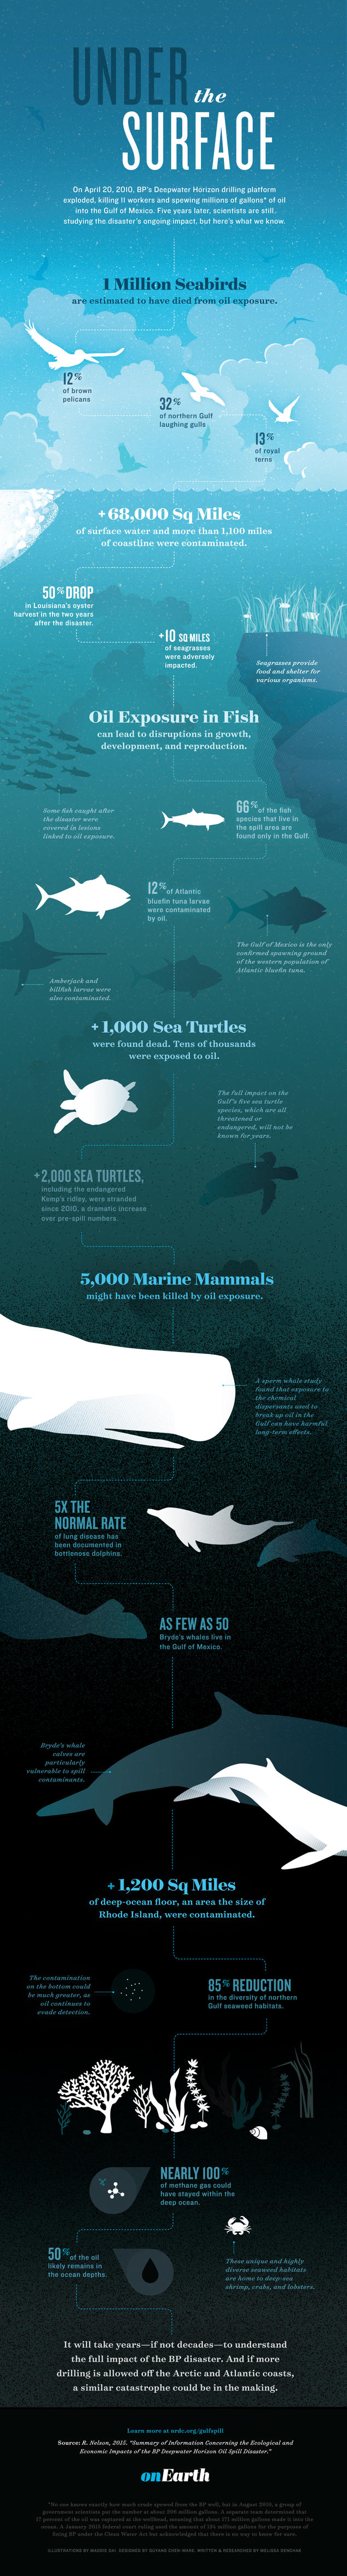 BP oil spill impacts infographic